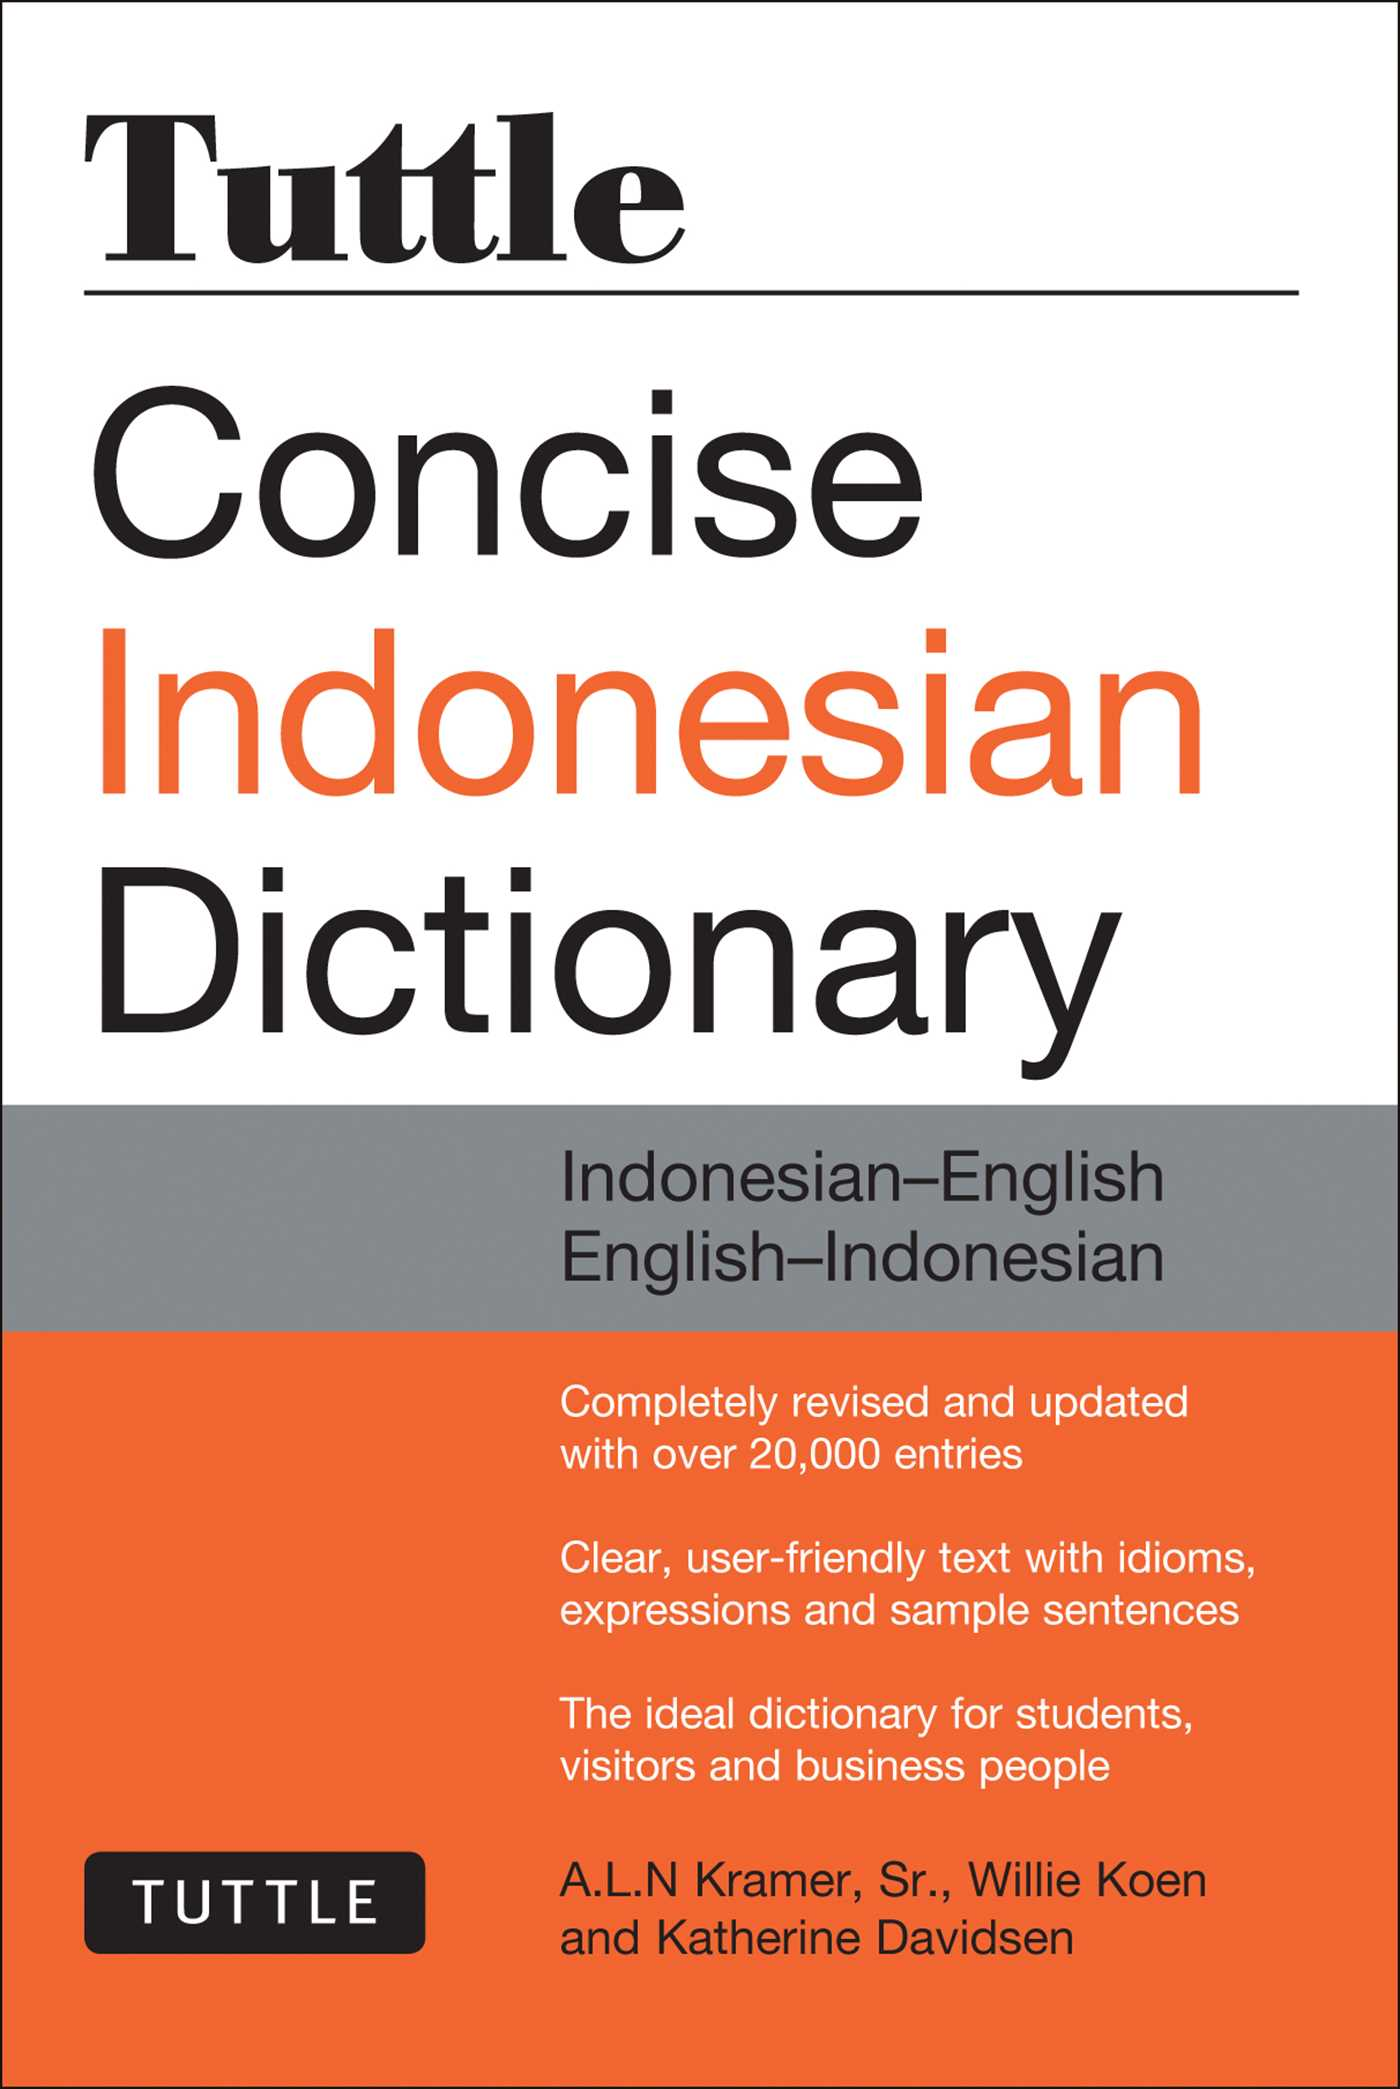 Tuttle-concise-indonesian-dictionary-9780804844772_hr